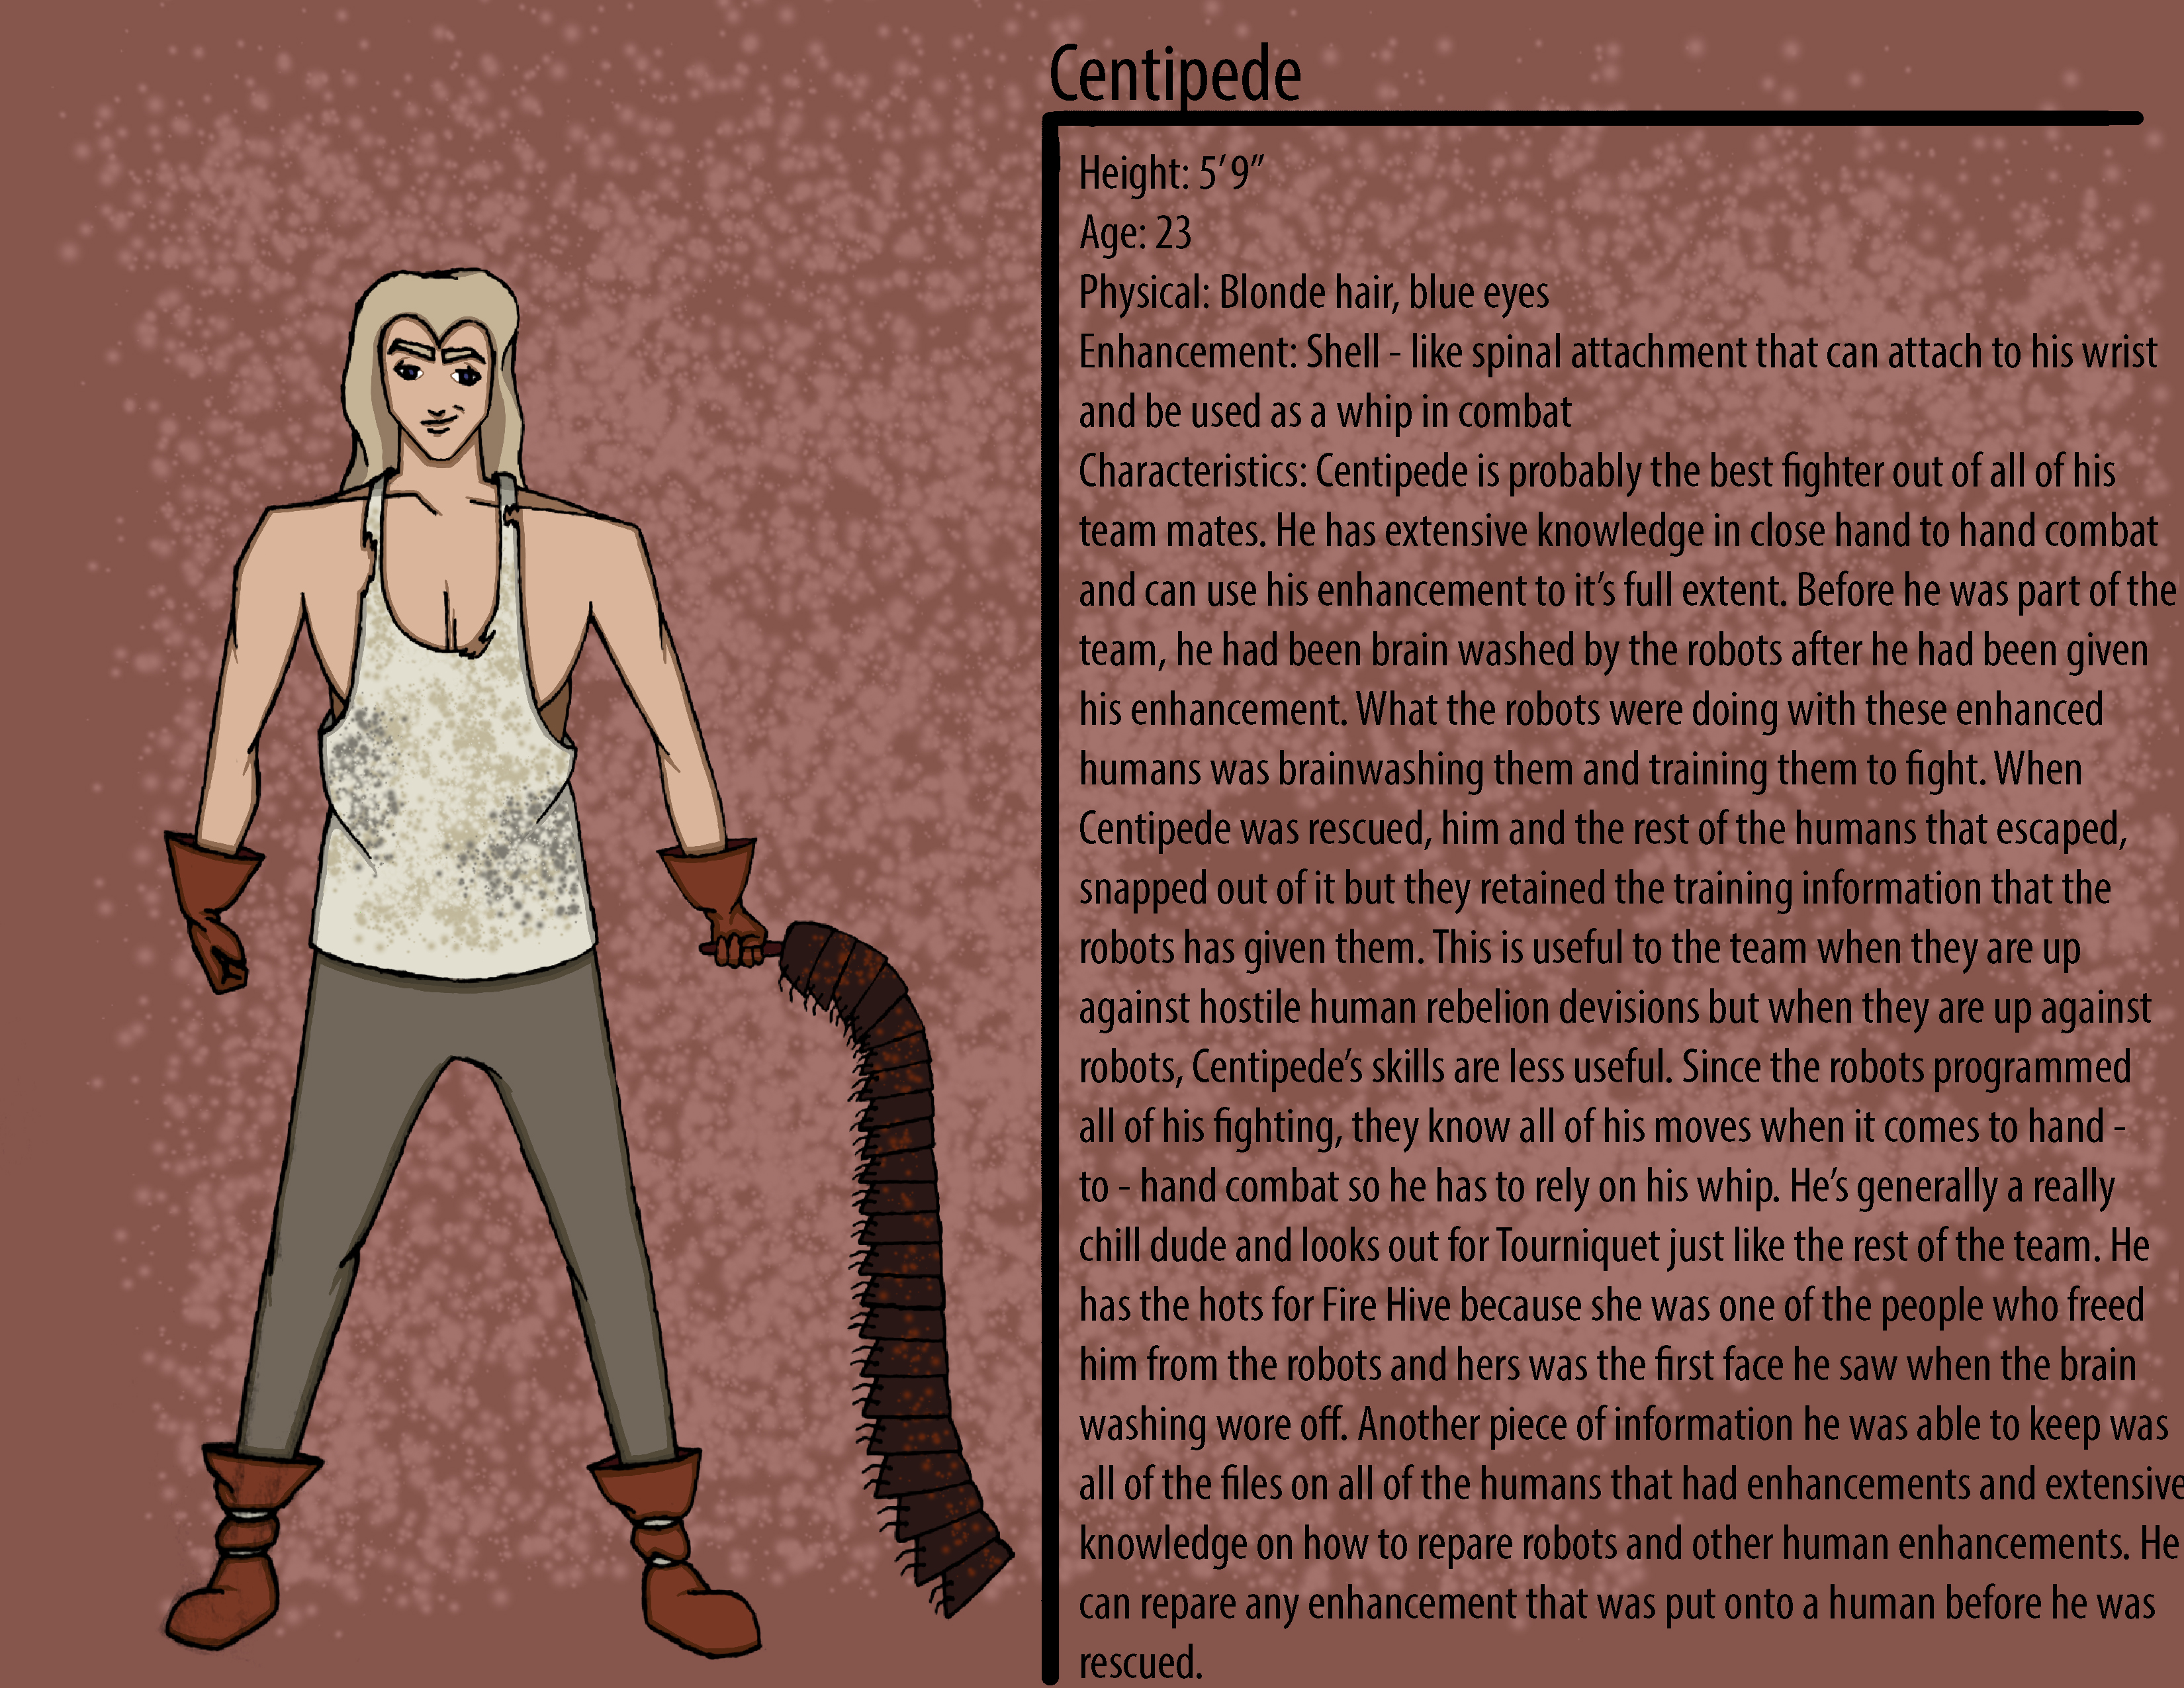 Centipede Character Description